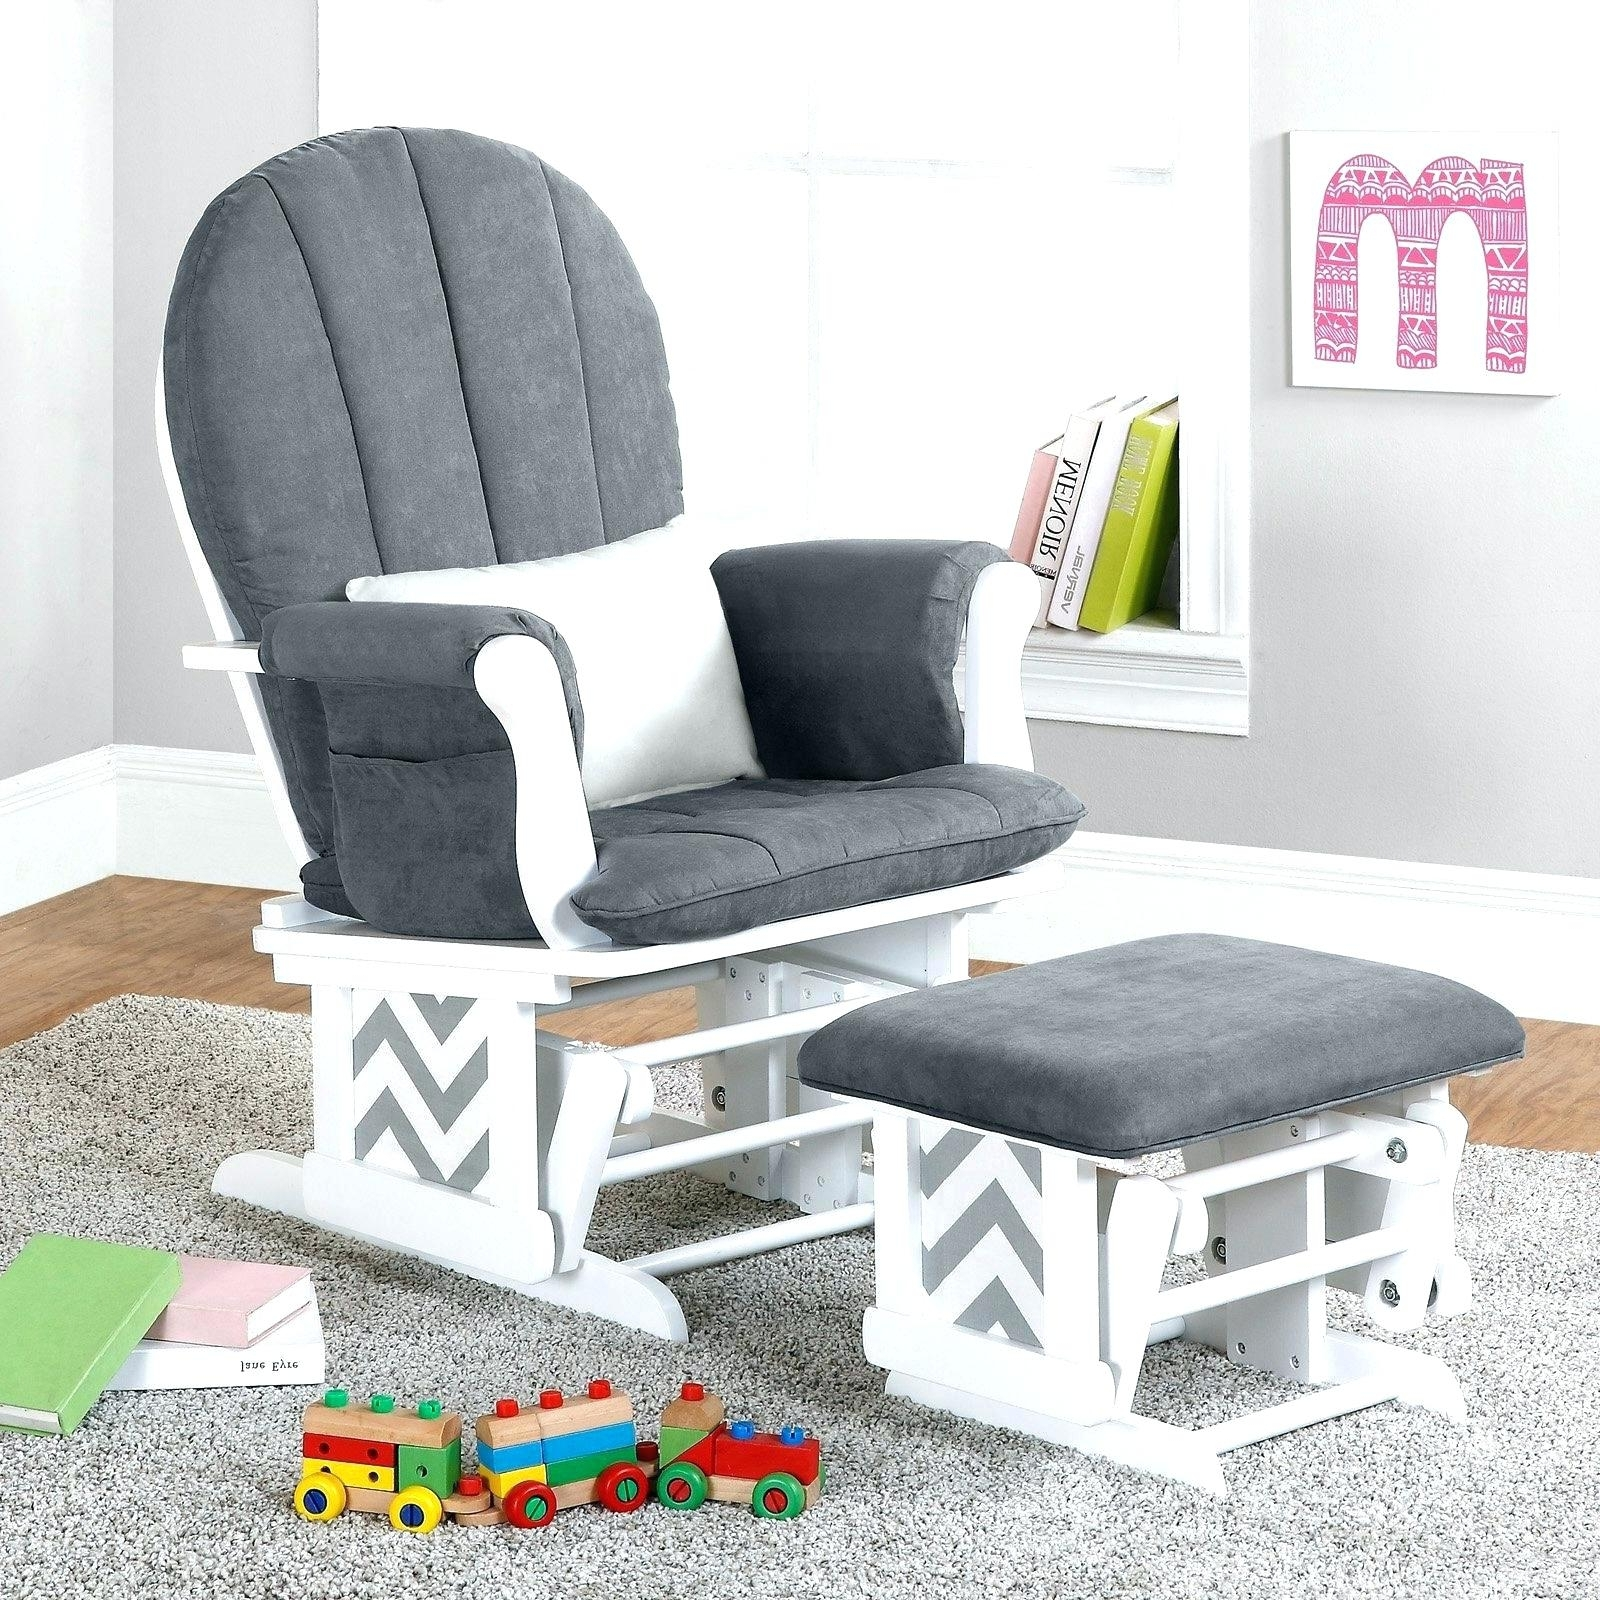 Fashionable Ottomans : Baby Room Rocker Recliner Glider Chair With Ottoman Sale Throughout Rocking Chairs For Baby Room (View 4 of 15)